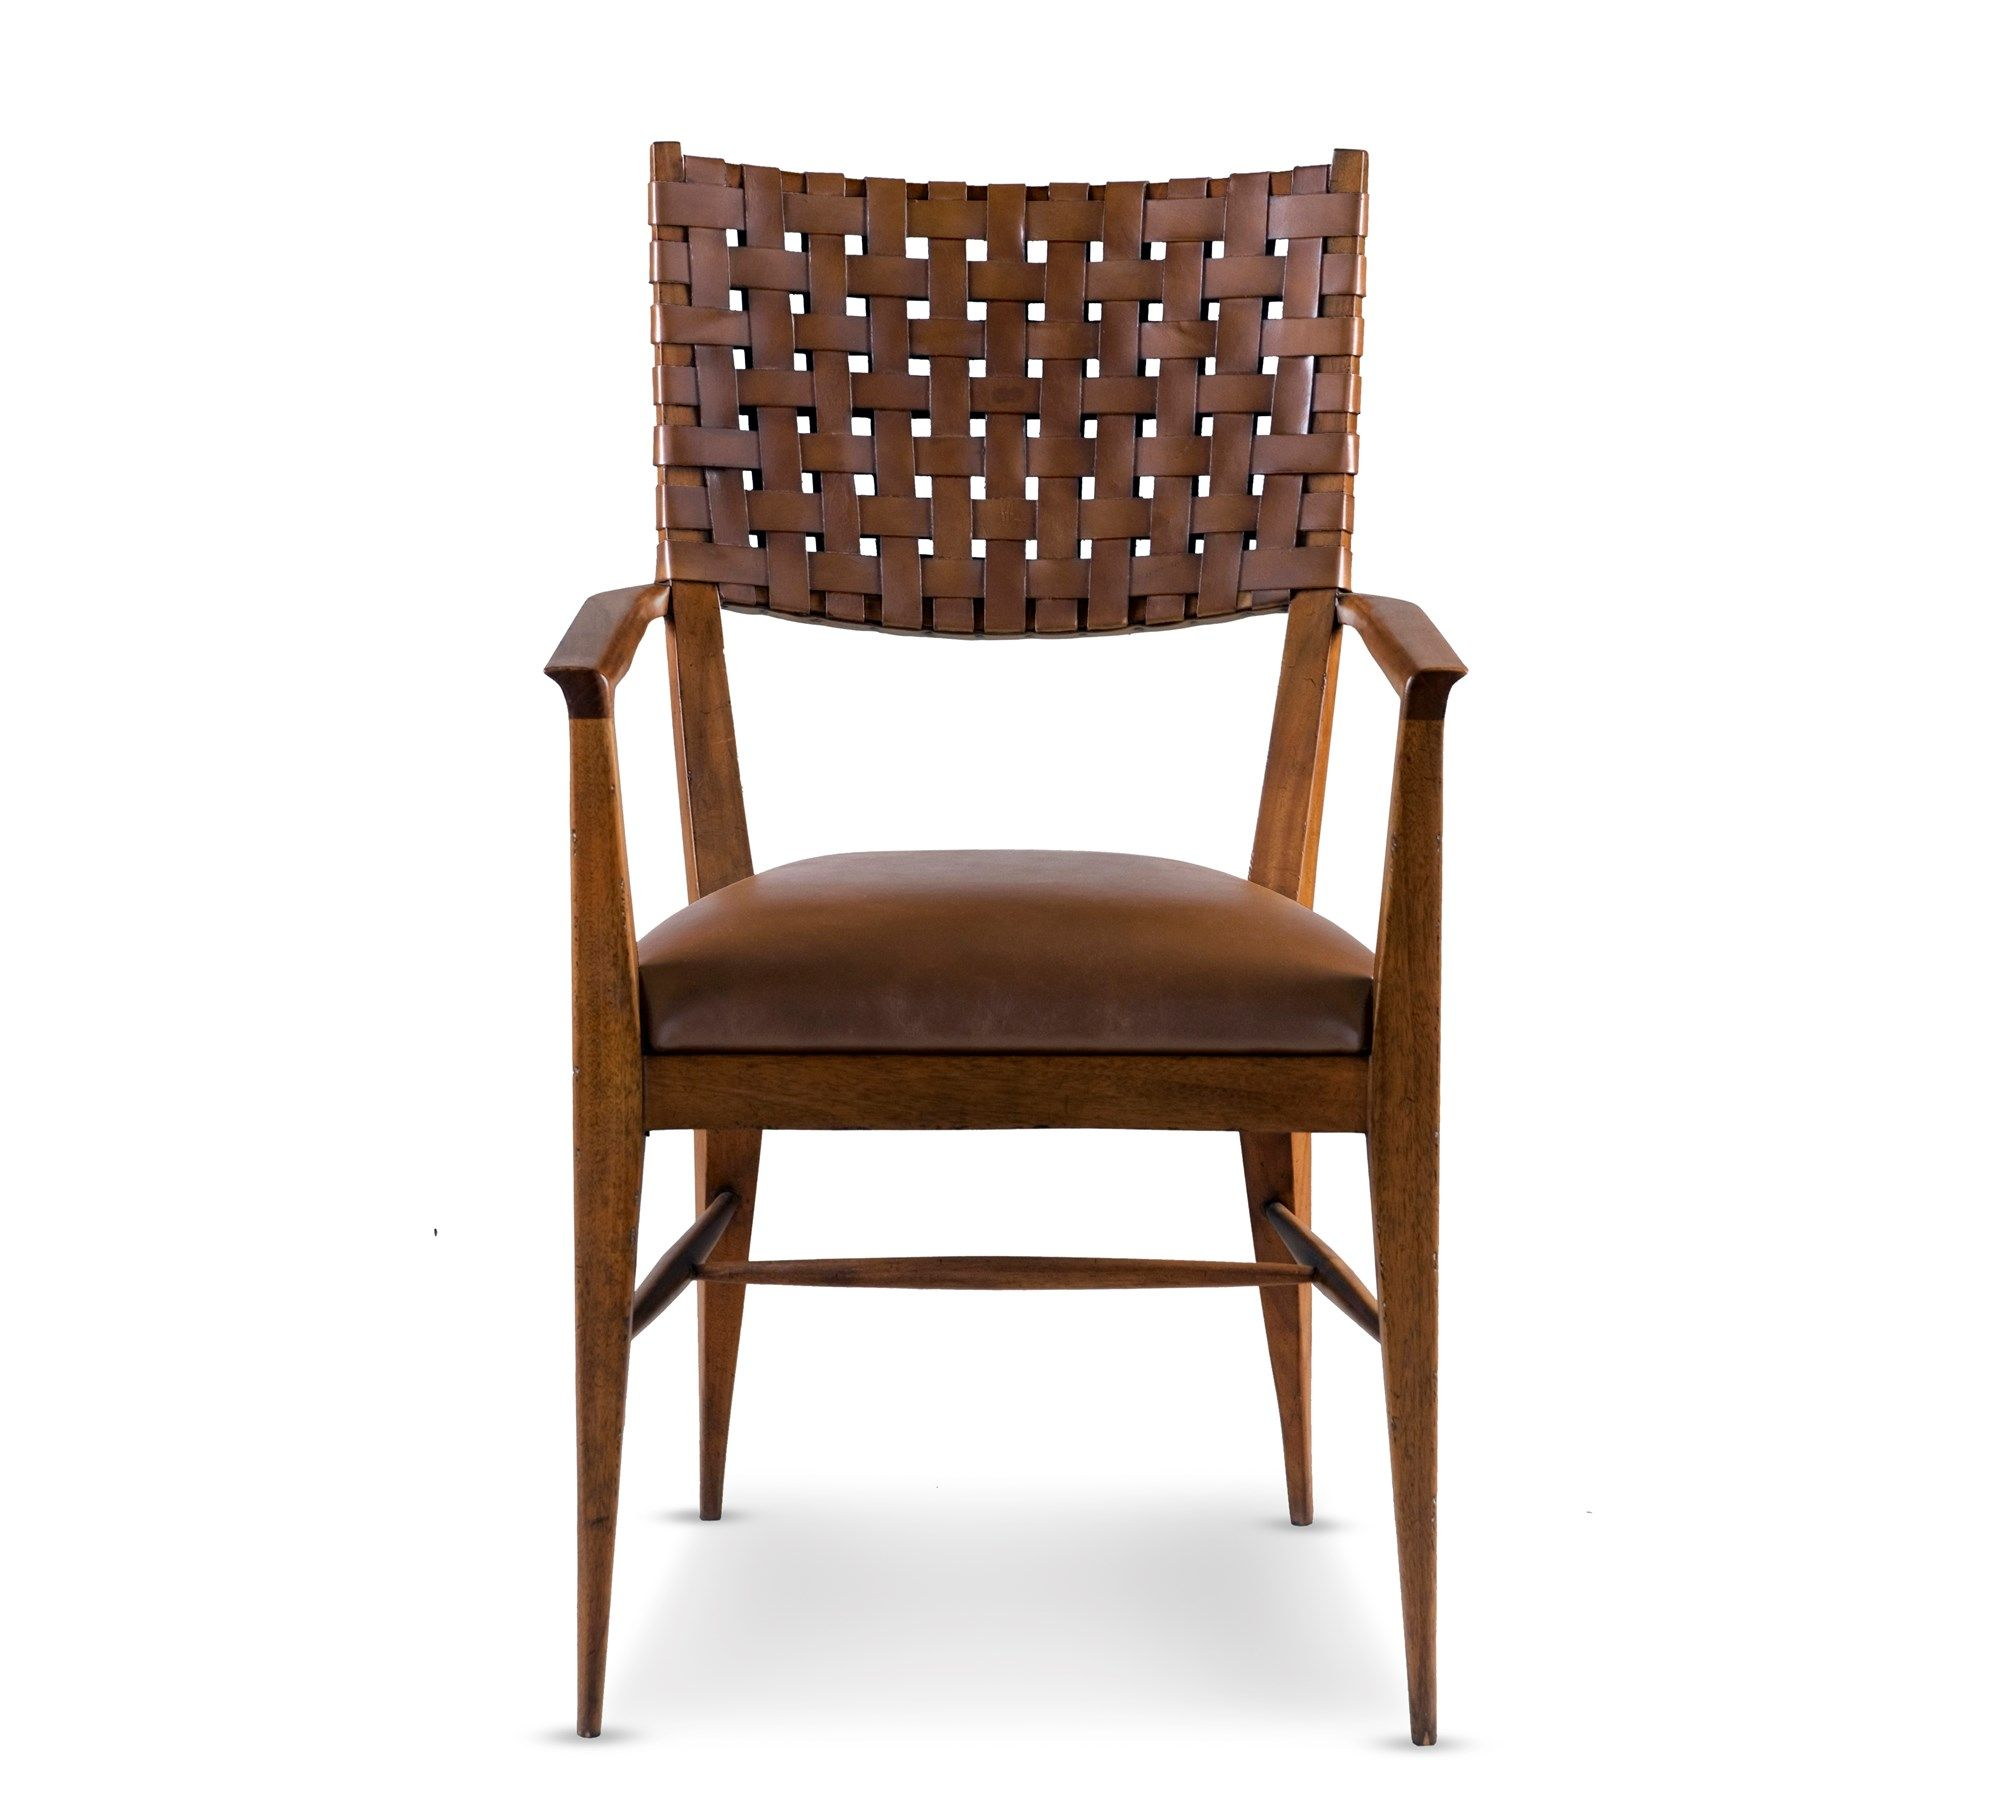 Milo Leather Arm Chair Dining Chairs Dining Room Robb Stucky Goods Home Furnishings Furniture Discount Furniture Stores Cheap dining chairs for sale